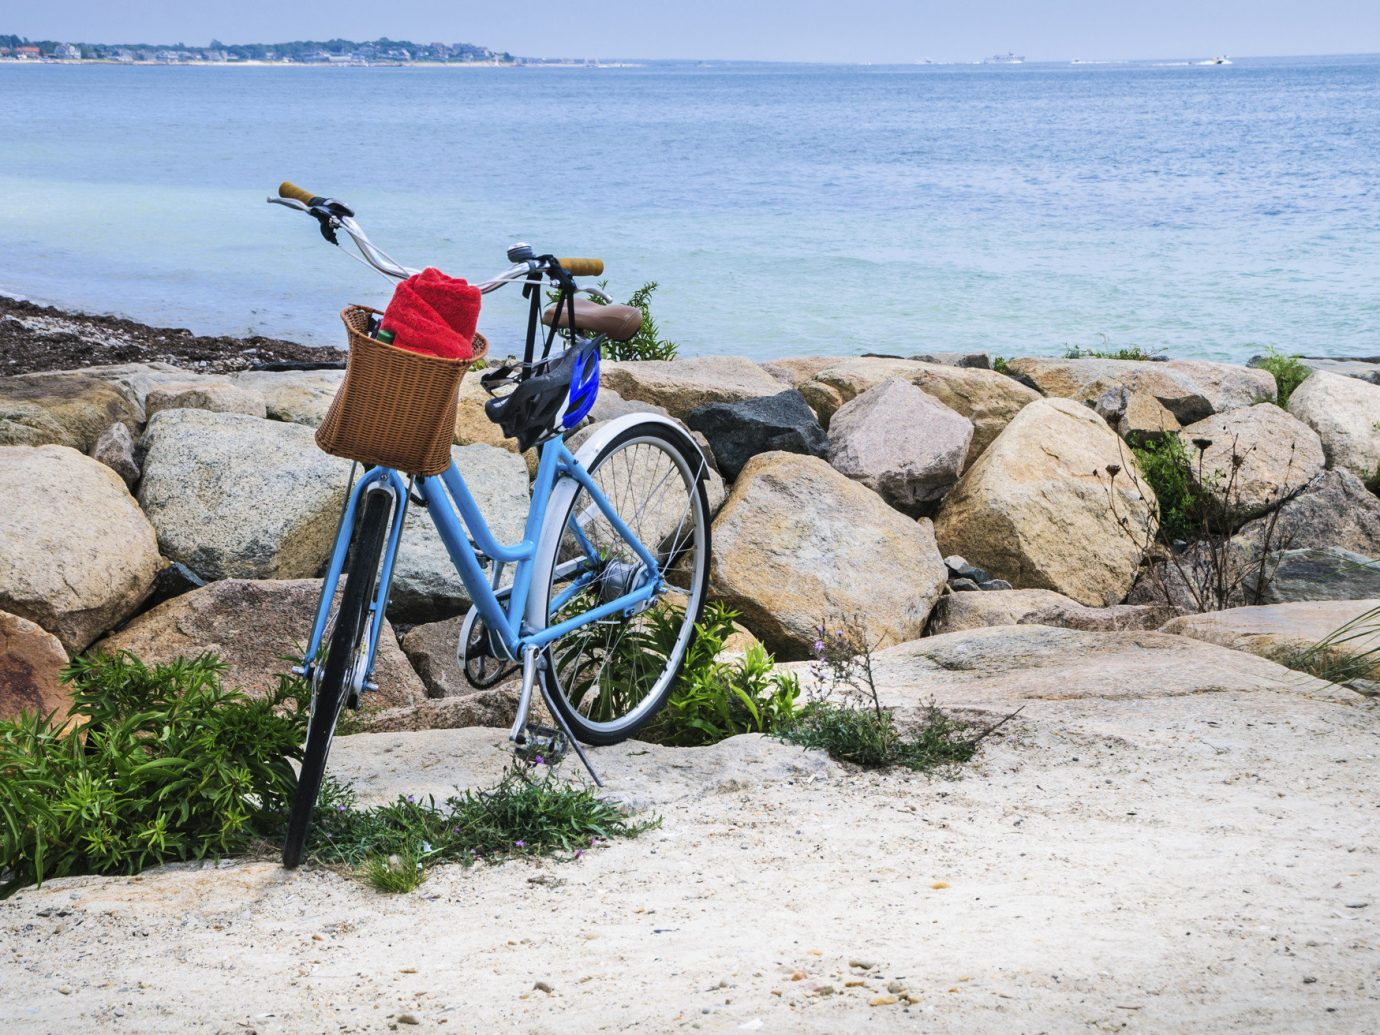 Trip Ideas outdoor rock ground water bicycle Beach Ocean rocky vehicle mountain bike Coast Sea vacation cycling parked mountain biking mountain sports equipment sand overlooking stone sandy shore